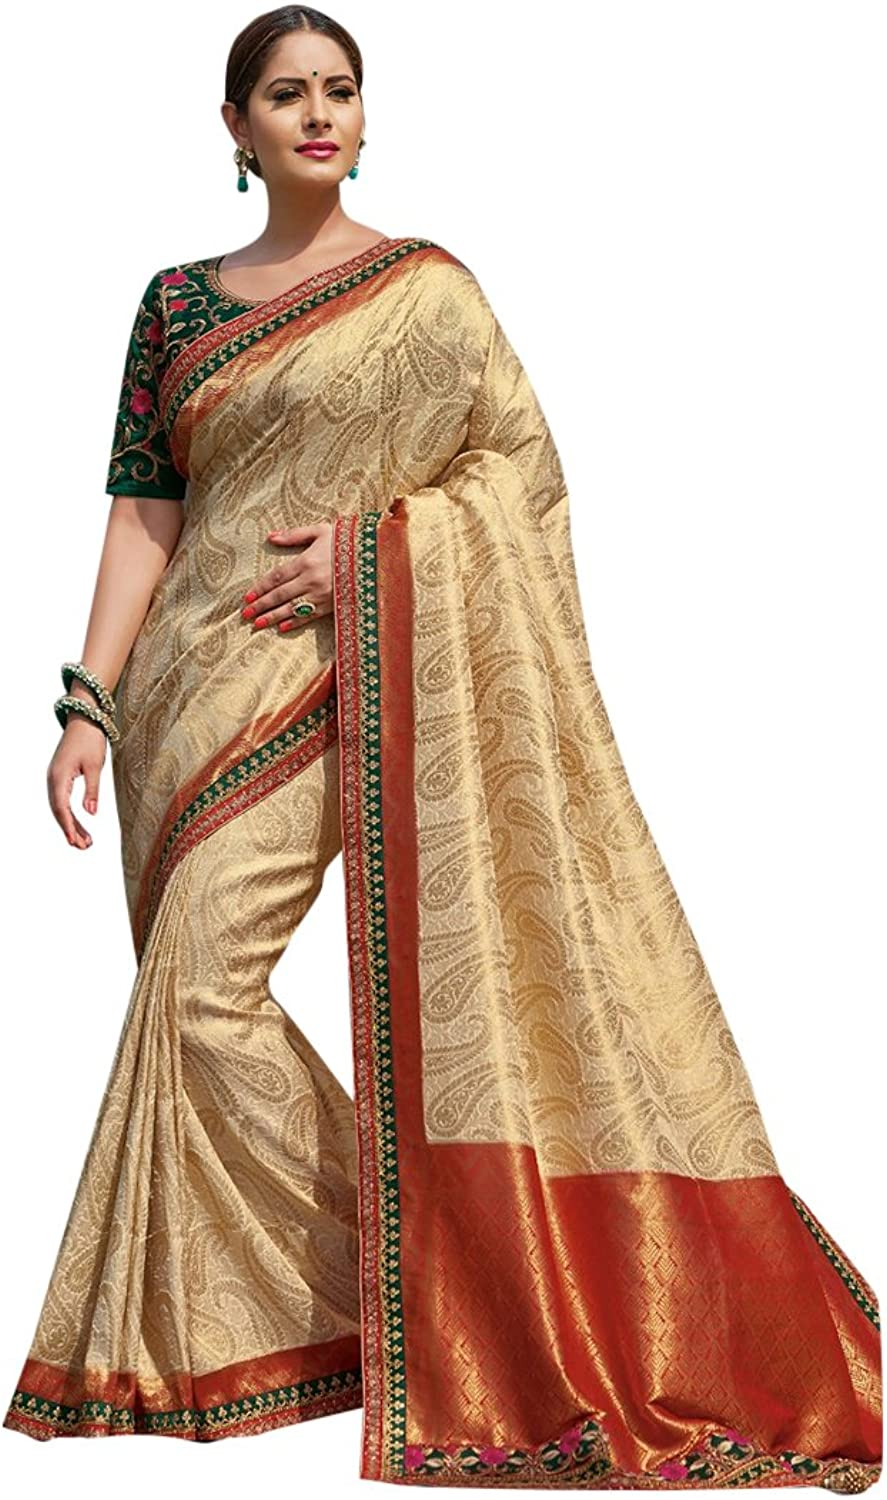 Bollywood Bridal Saree Sari for Women Collection Blouse Wedding Party Wear Ceremony 822 17